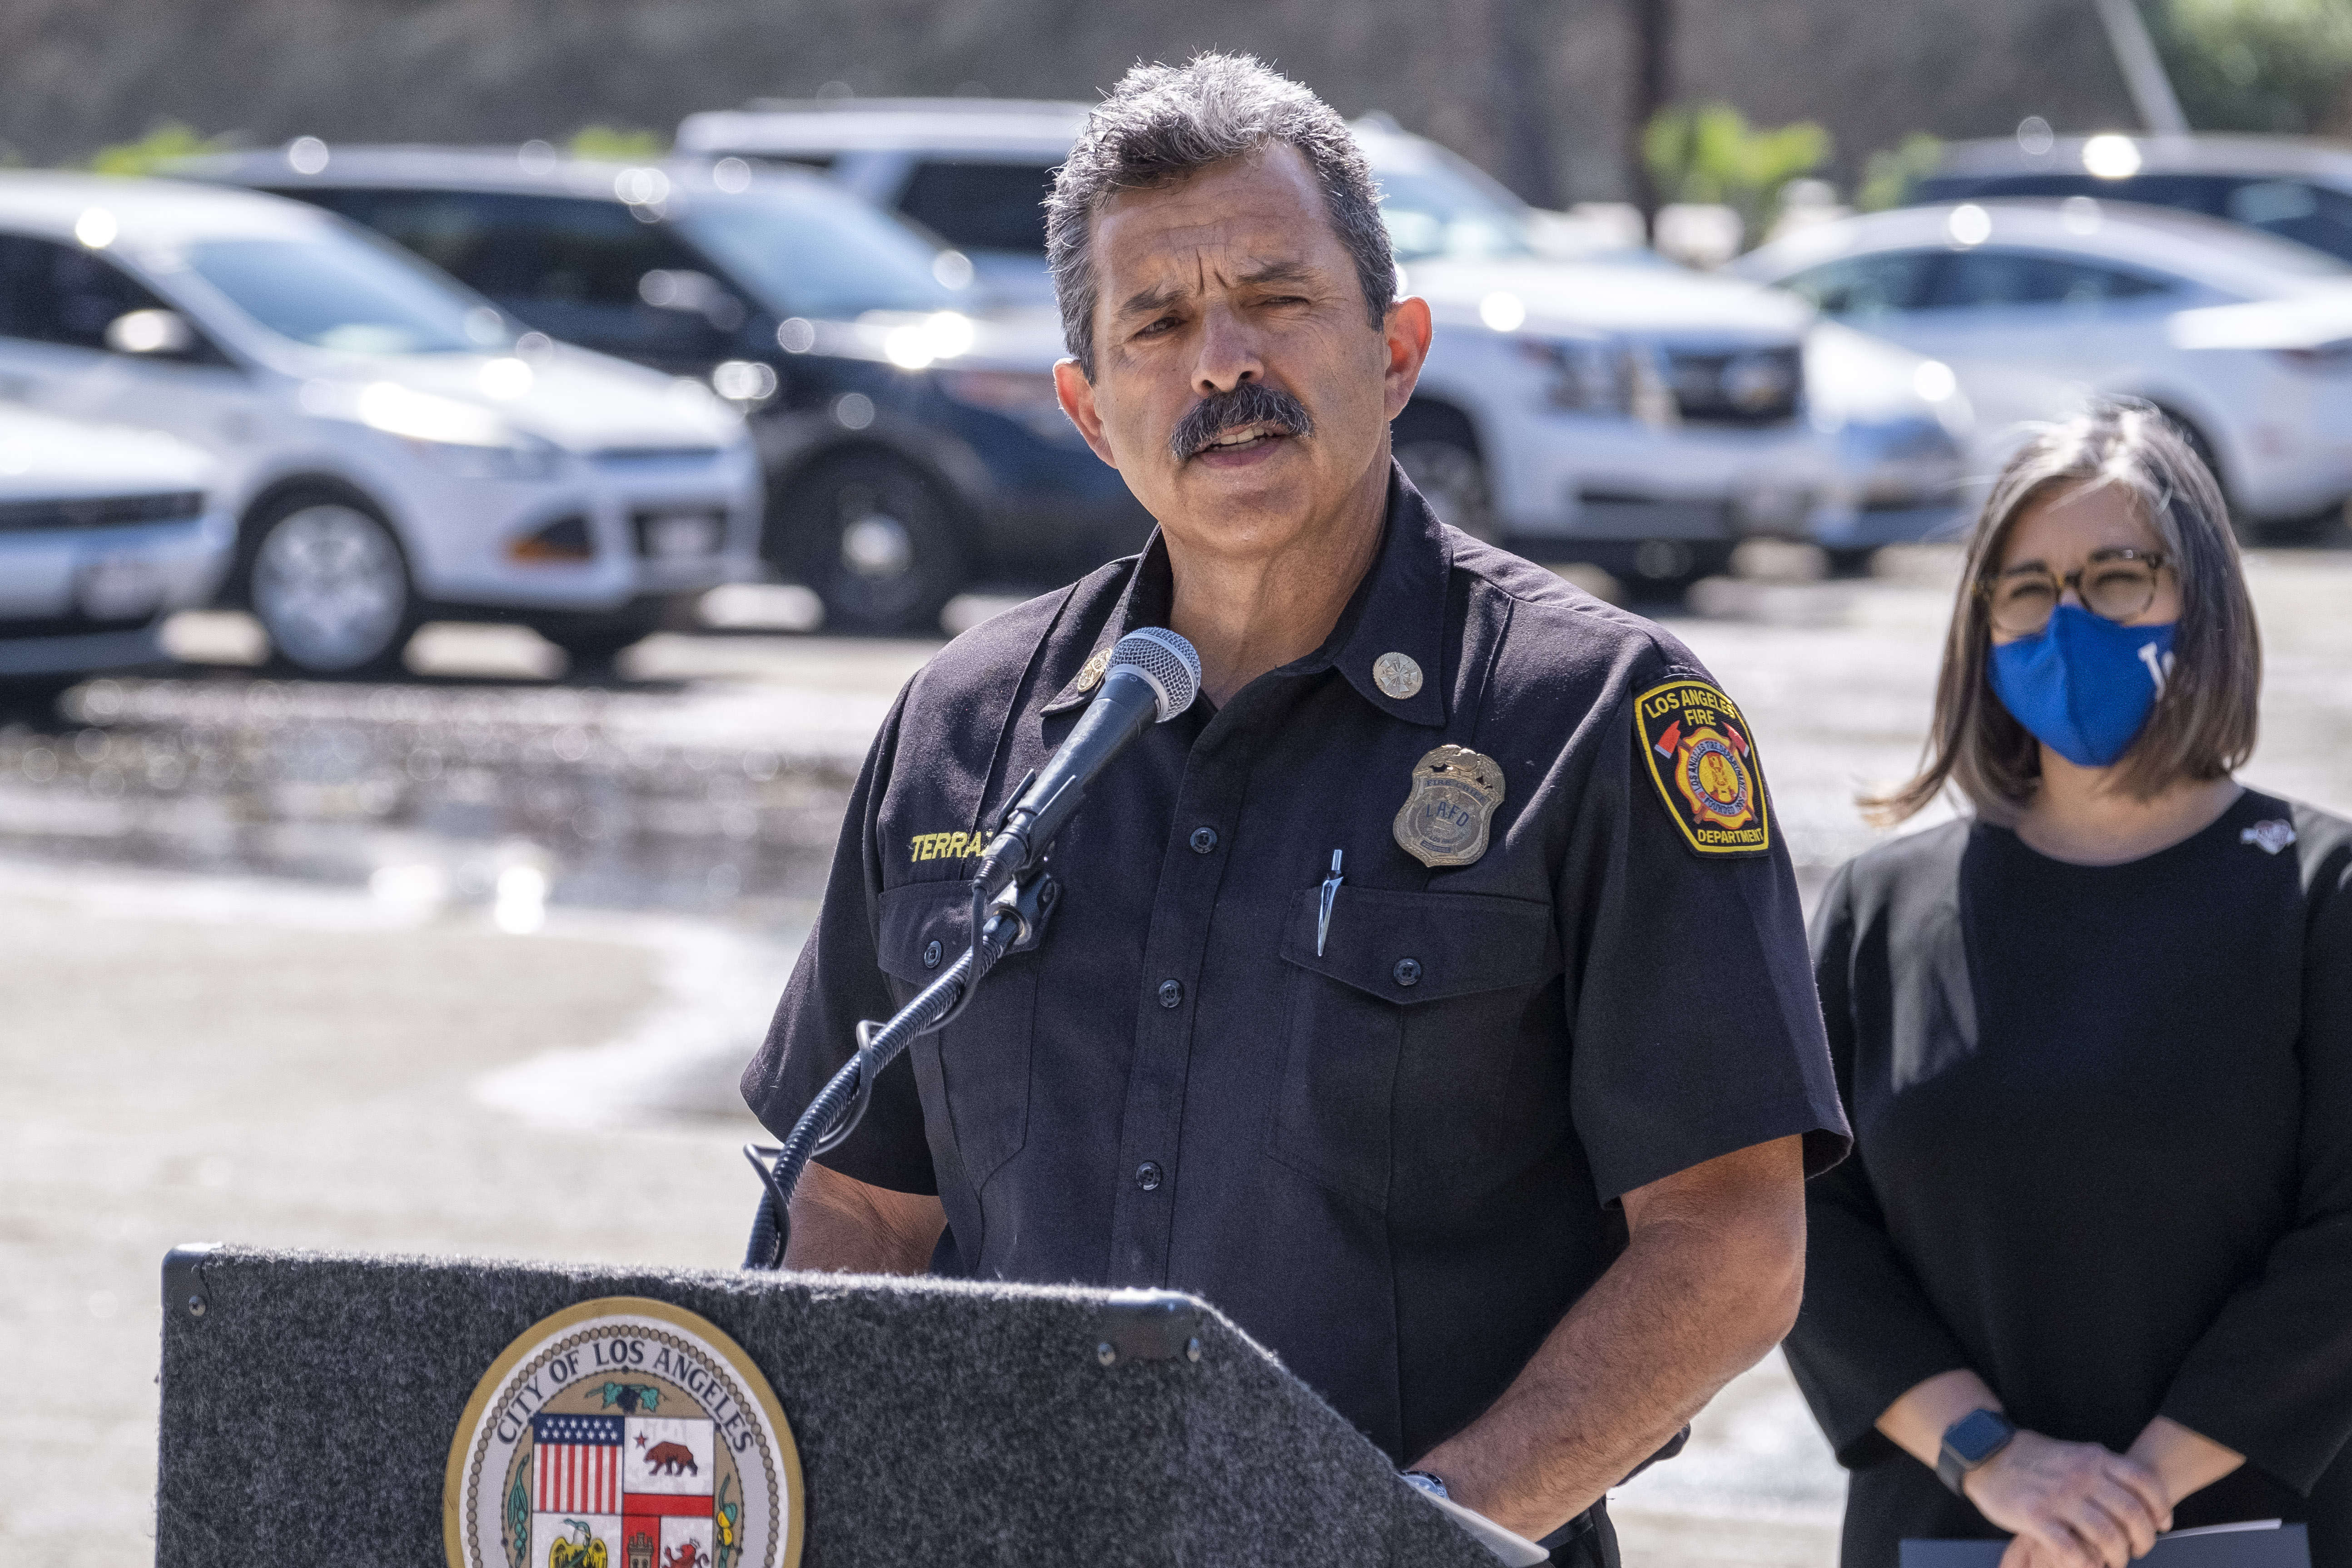 Los Angeles City Fire Department Chief Ralph Terrazas speaks during a press conference unveiling the department's Thermite RS3 robotic vehicle in a parking lot adjacent to the Frank Hotchkin Memorial Training Center, Tuesday, Oct. 13, 2020. (Hans Gutknecht/The Orange County Register via AP)